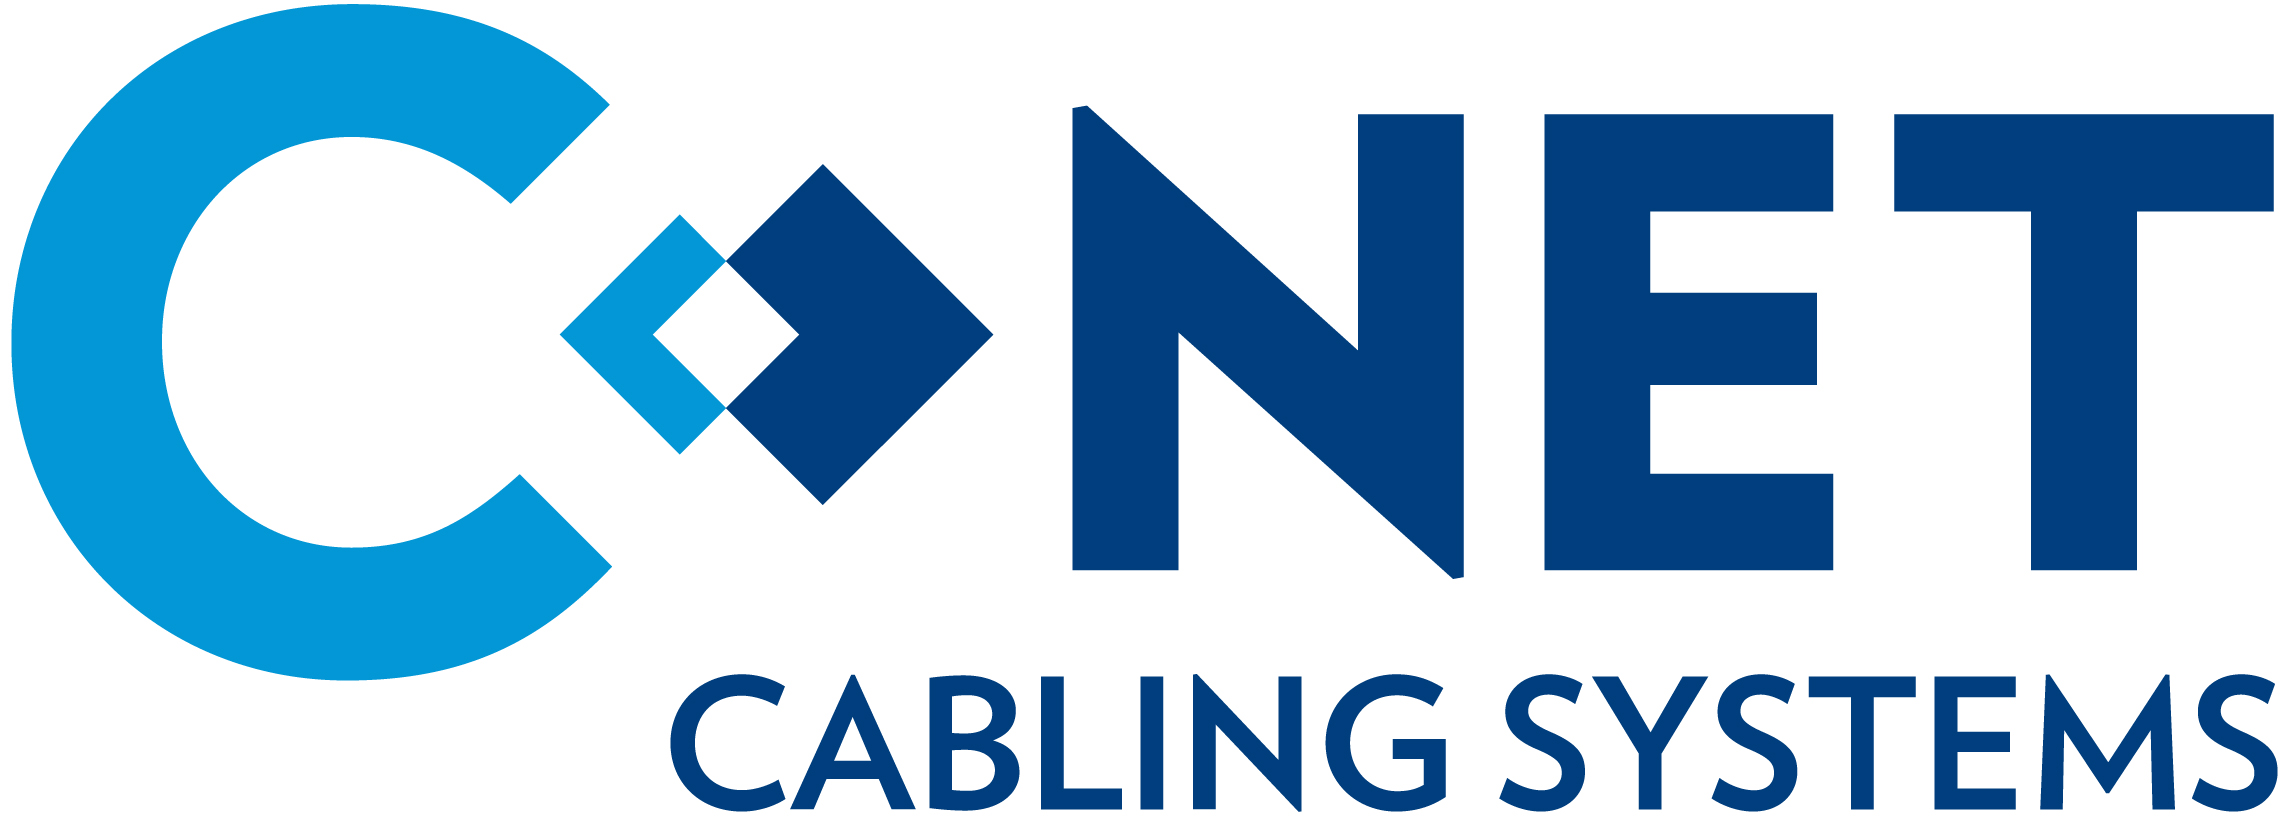 C-NET cabling systems logo